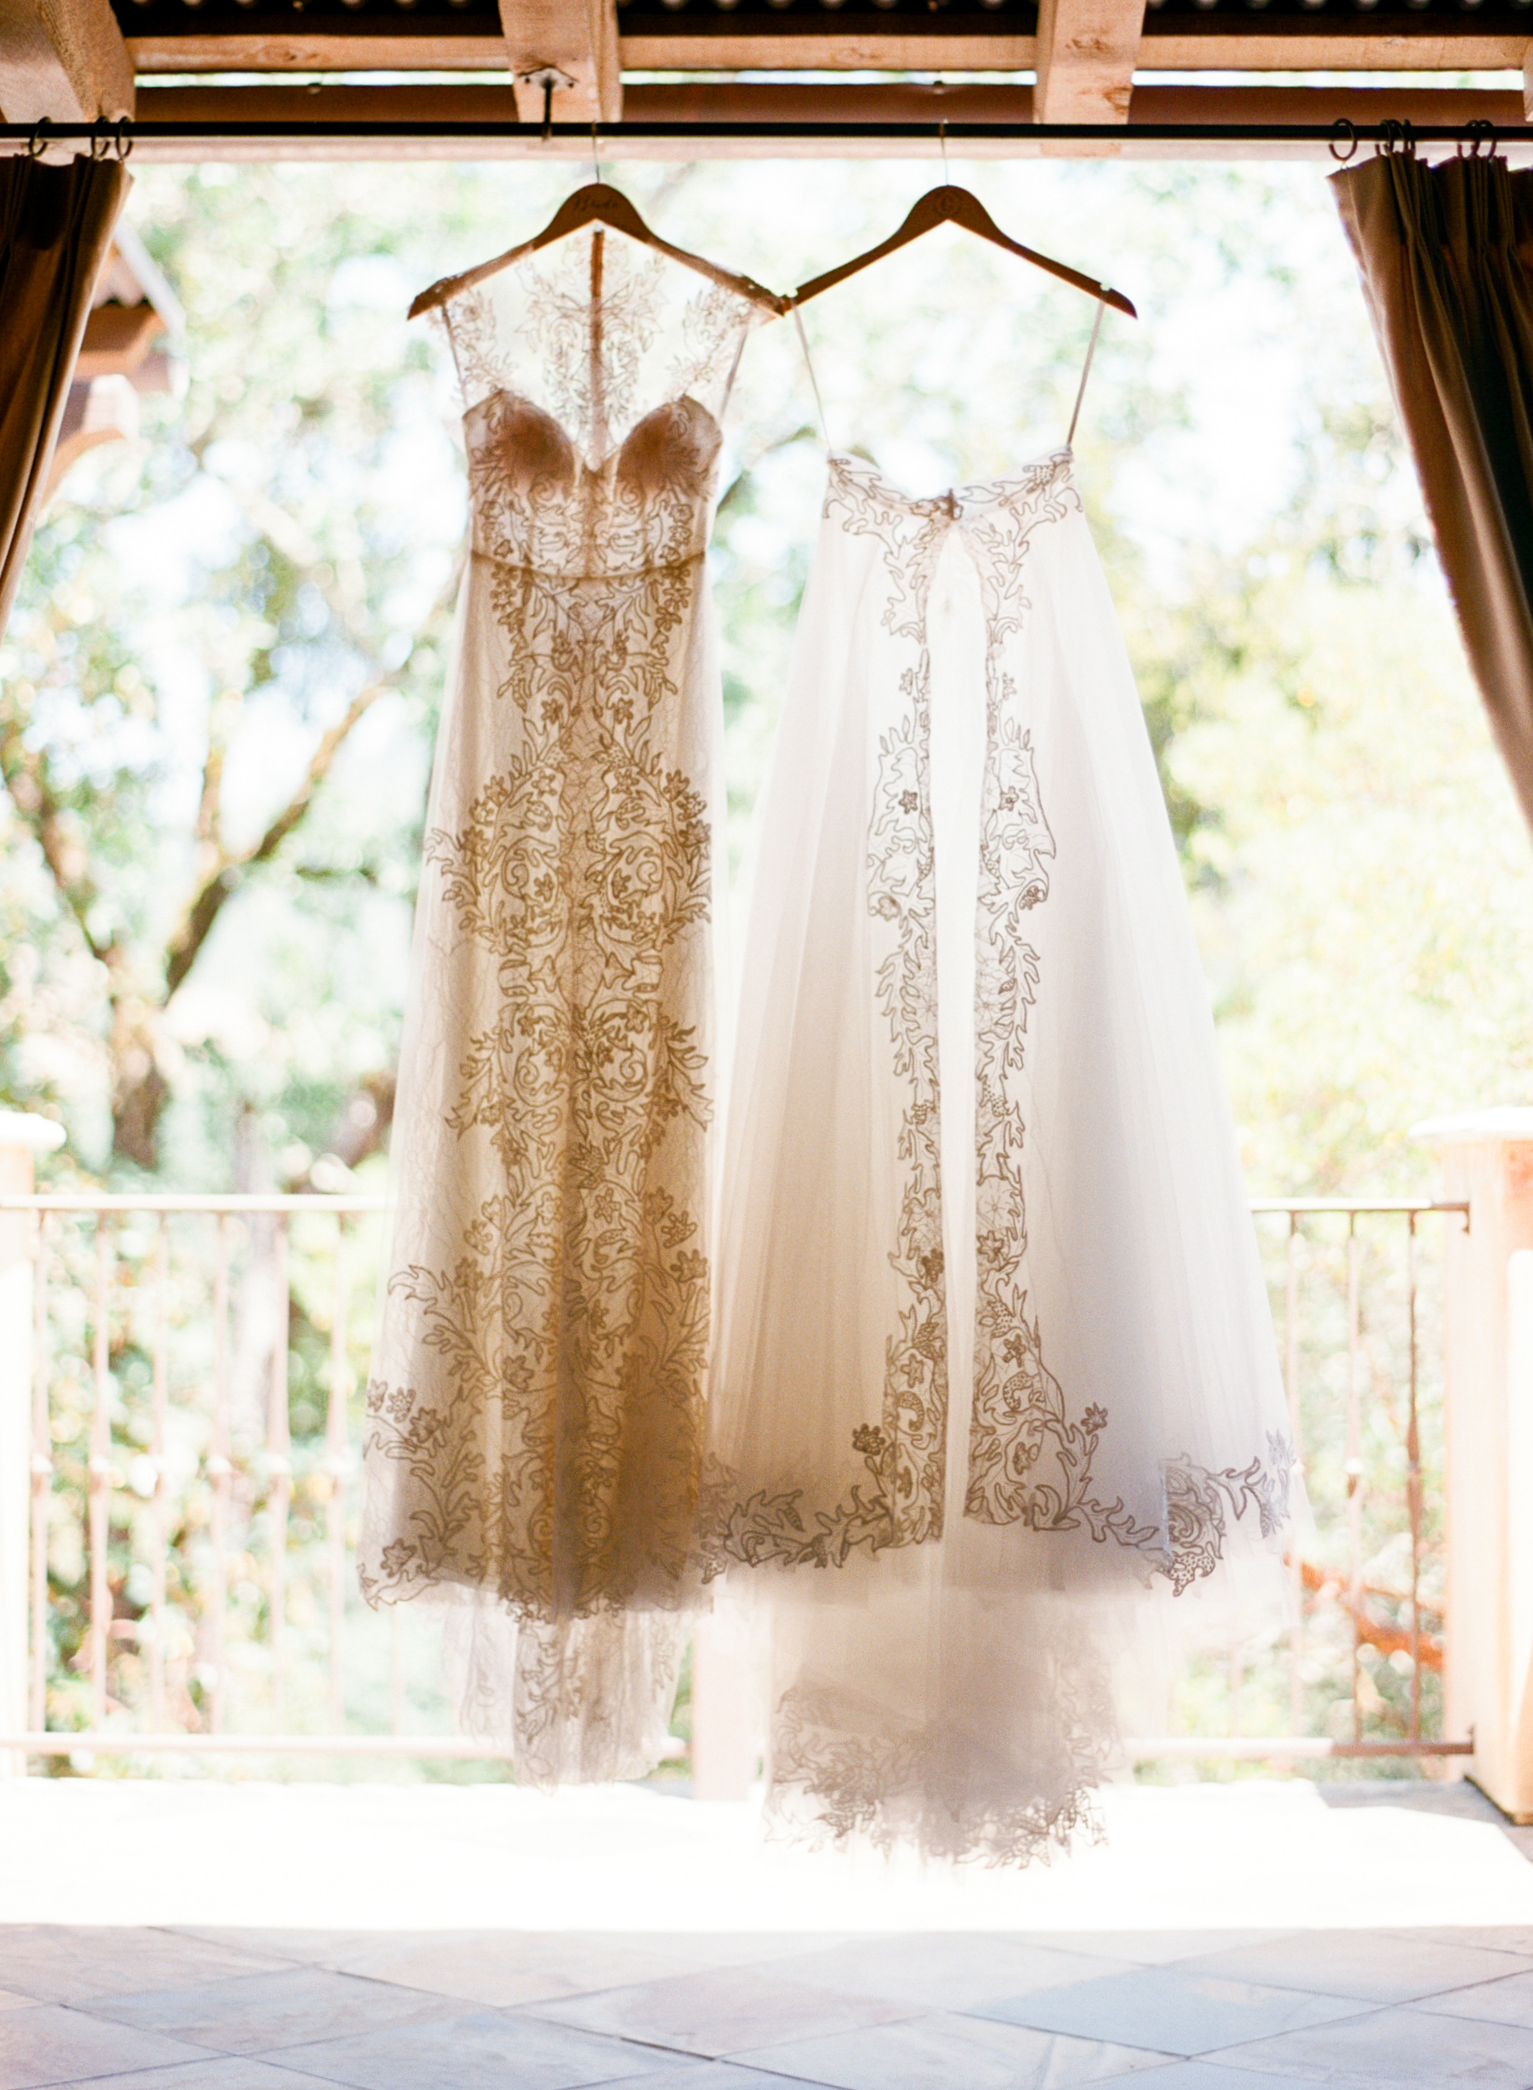 Caroline's stunning two piece Monique Lhuillier lace gown hangs on rafters before the ceremony; photo by Sylvie